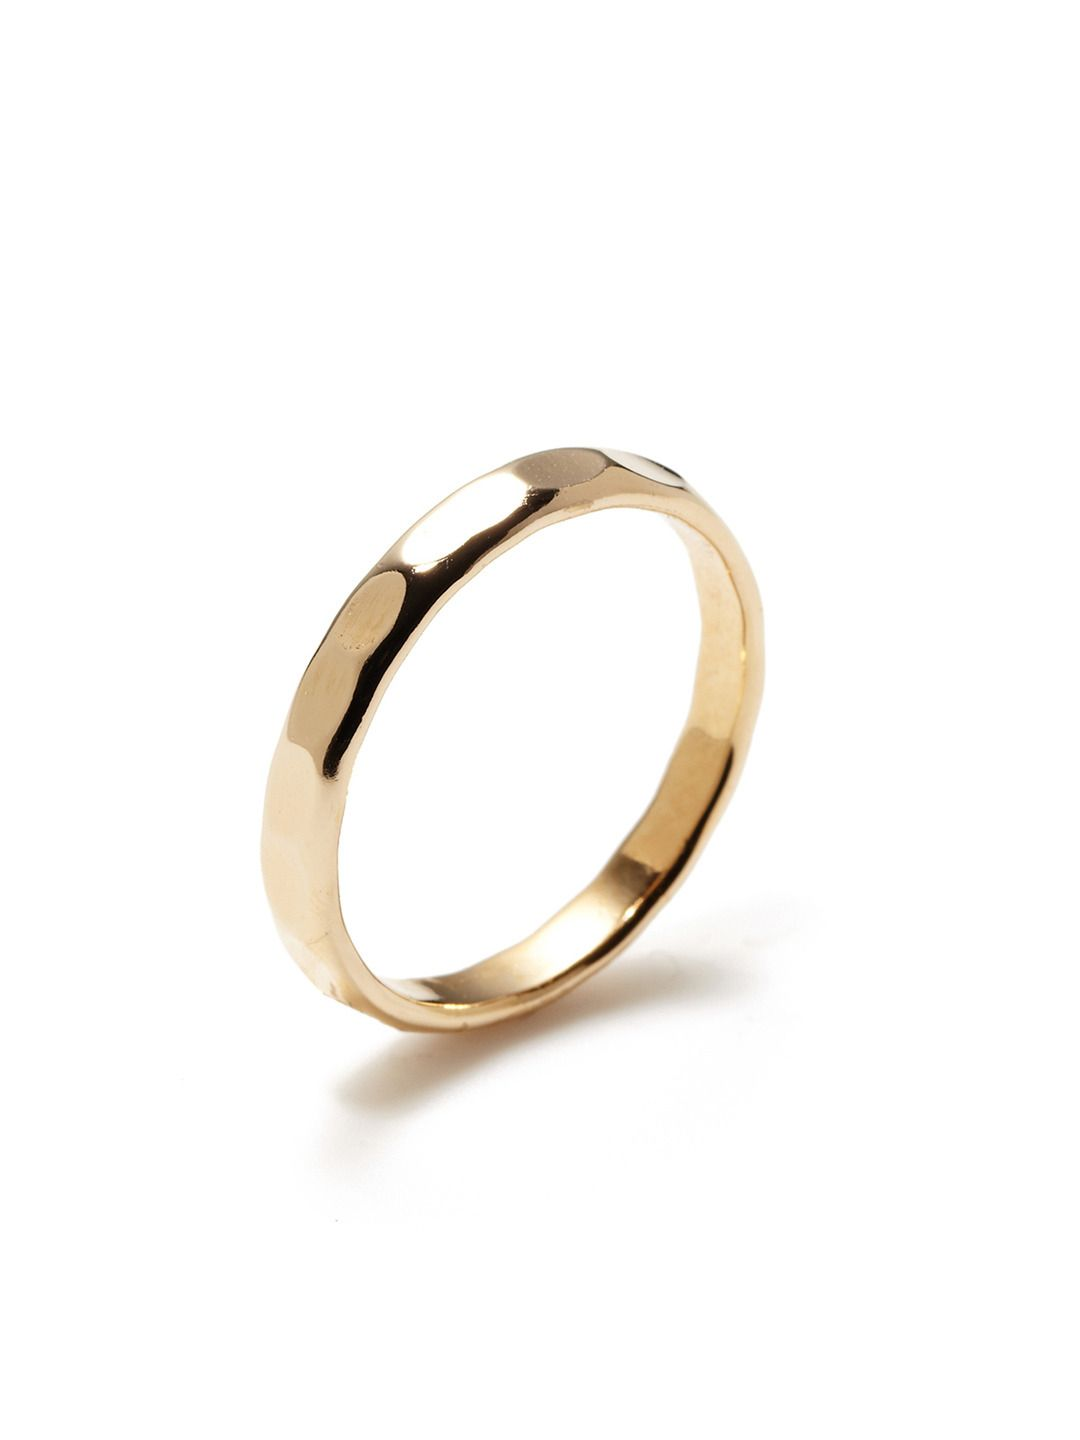 Gold Ring by Soixante Neuf at Gilt